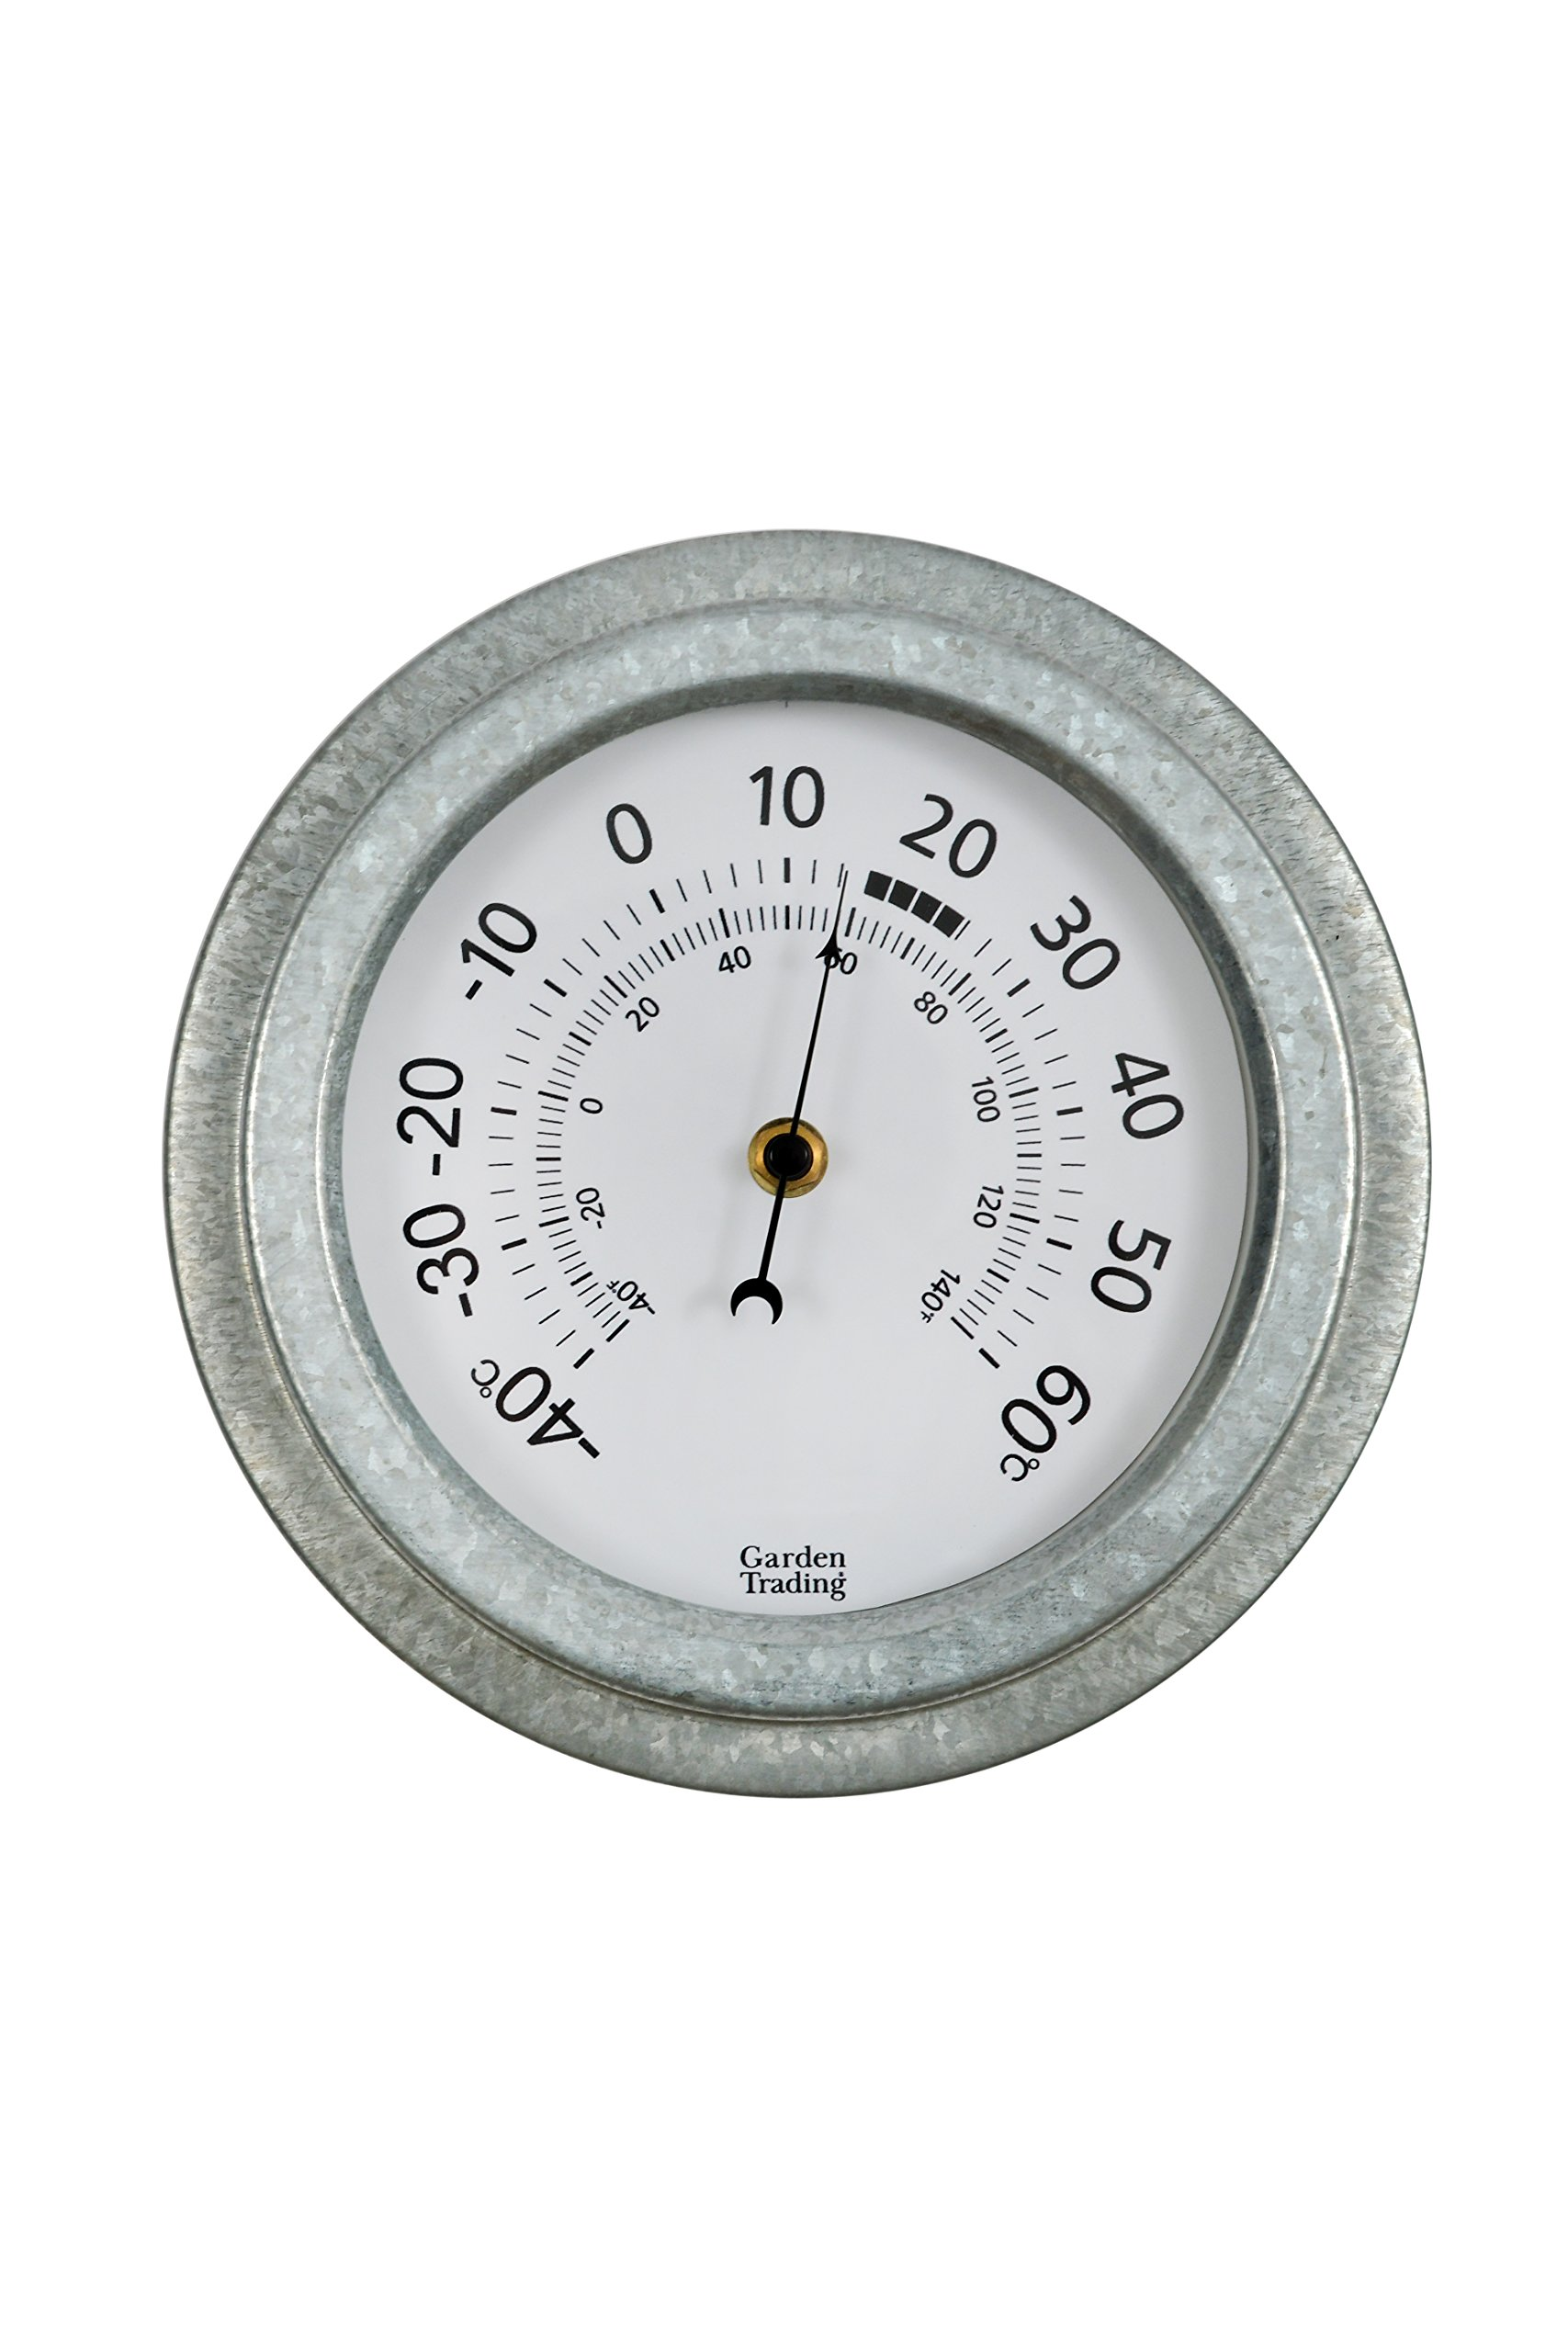 CKB Ltd Vintage Outdoor Wall Garden Thermometer Indoors And Outdoor Made With Weatherproof Galvanised Steel Traditional Analogue Dial Display Wall Mounted Ideal For A Patio Greenhouse Office